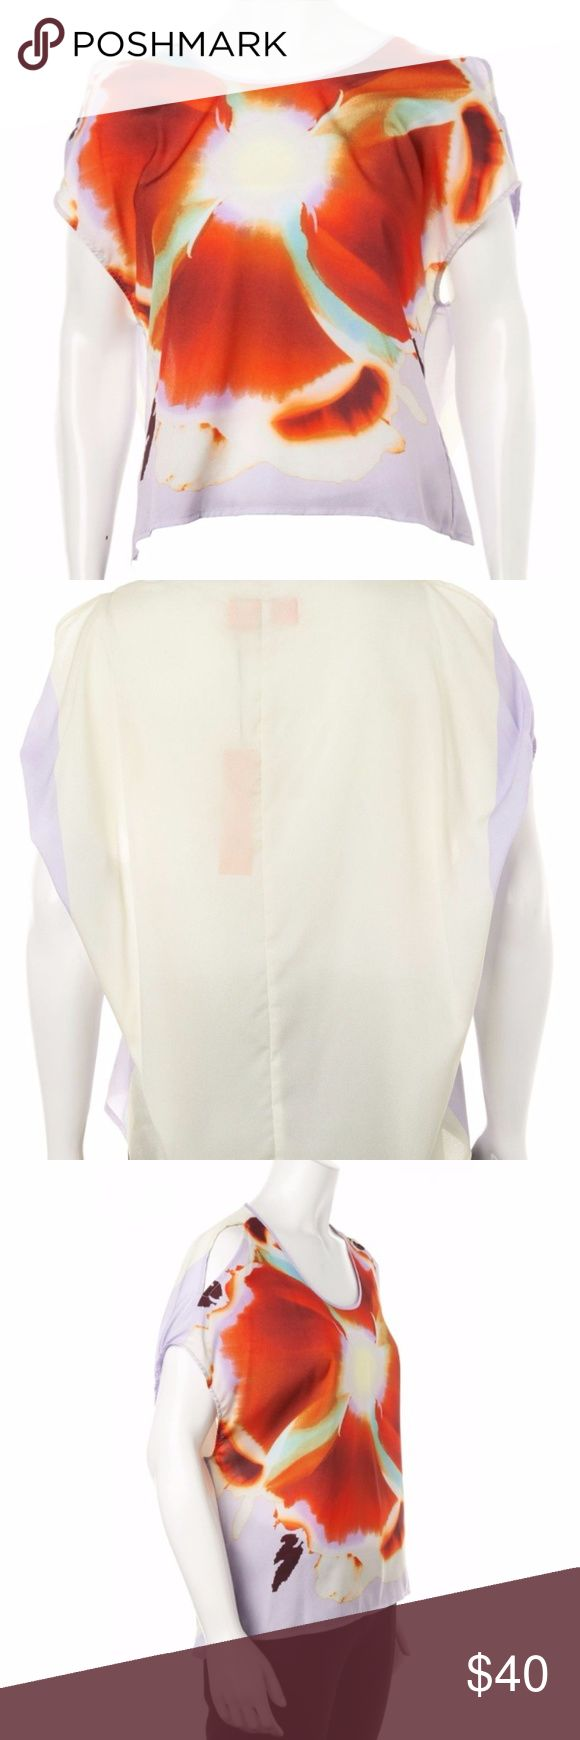 """Clover Canyon Digital print Cold shoulder Top New with tag attached. Lavender cream and orange multicolor digital flower cocoon top by Clover Canyon size XS. Cold shoulder with gathered sleeves, wide scoop neck, and high-low hem. Pictures are  of actual item.  Chest: 42"""" Length: 22"""" Retail Price: $213.00 Condition: Pristine Fabric: 100% Polyester; Combo 100% Polyester Designer: Clover Canyon Clover Canyon Tops"""